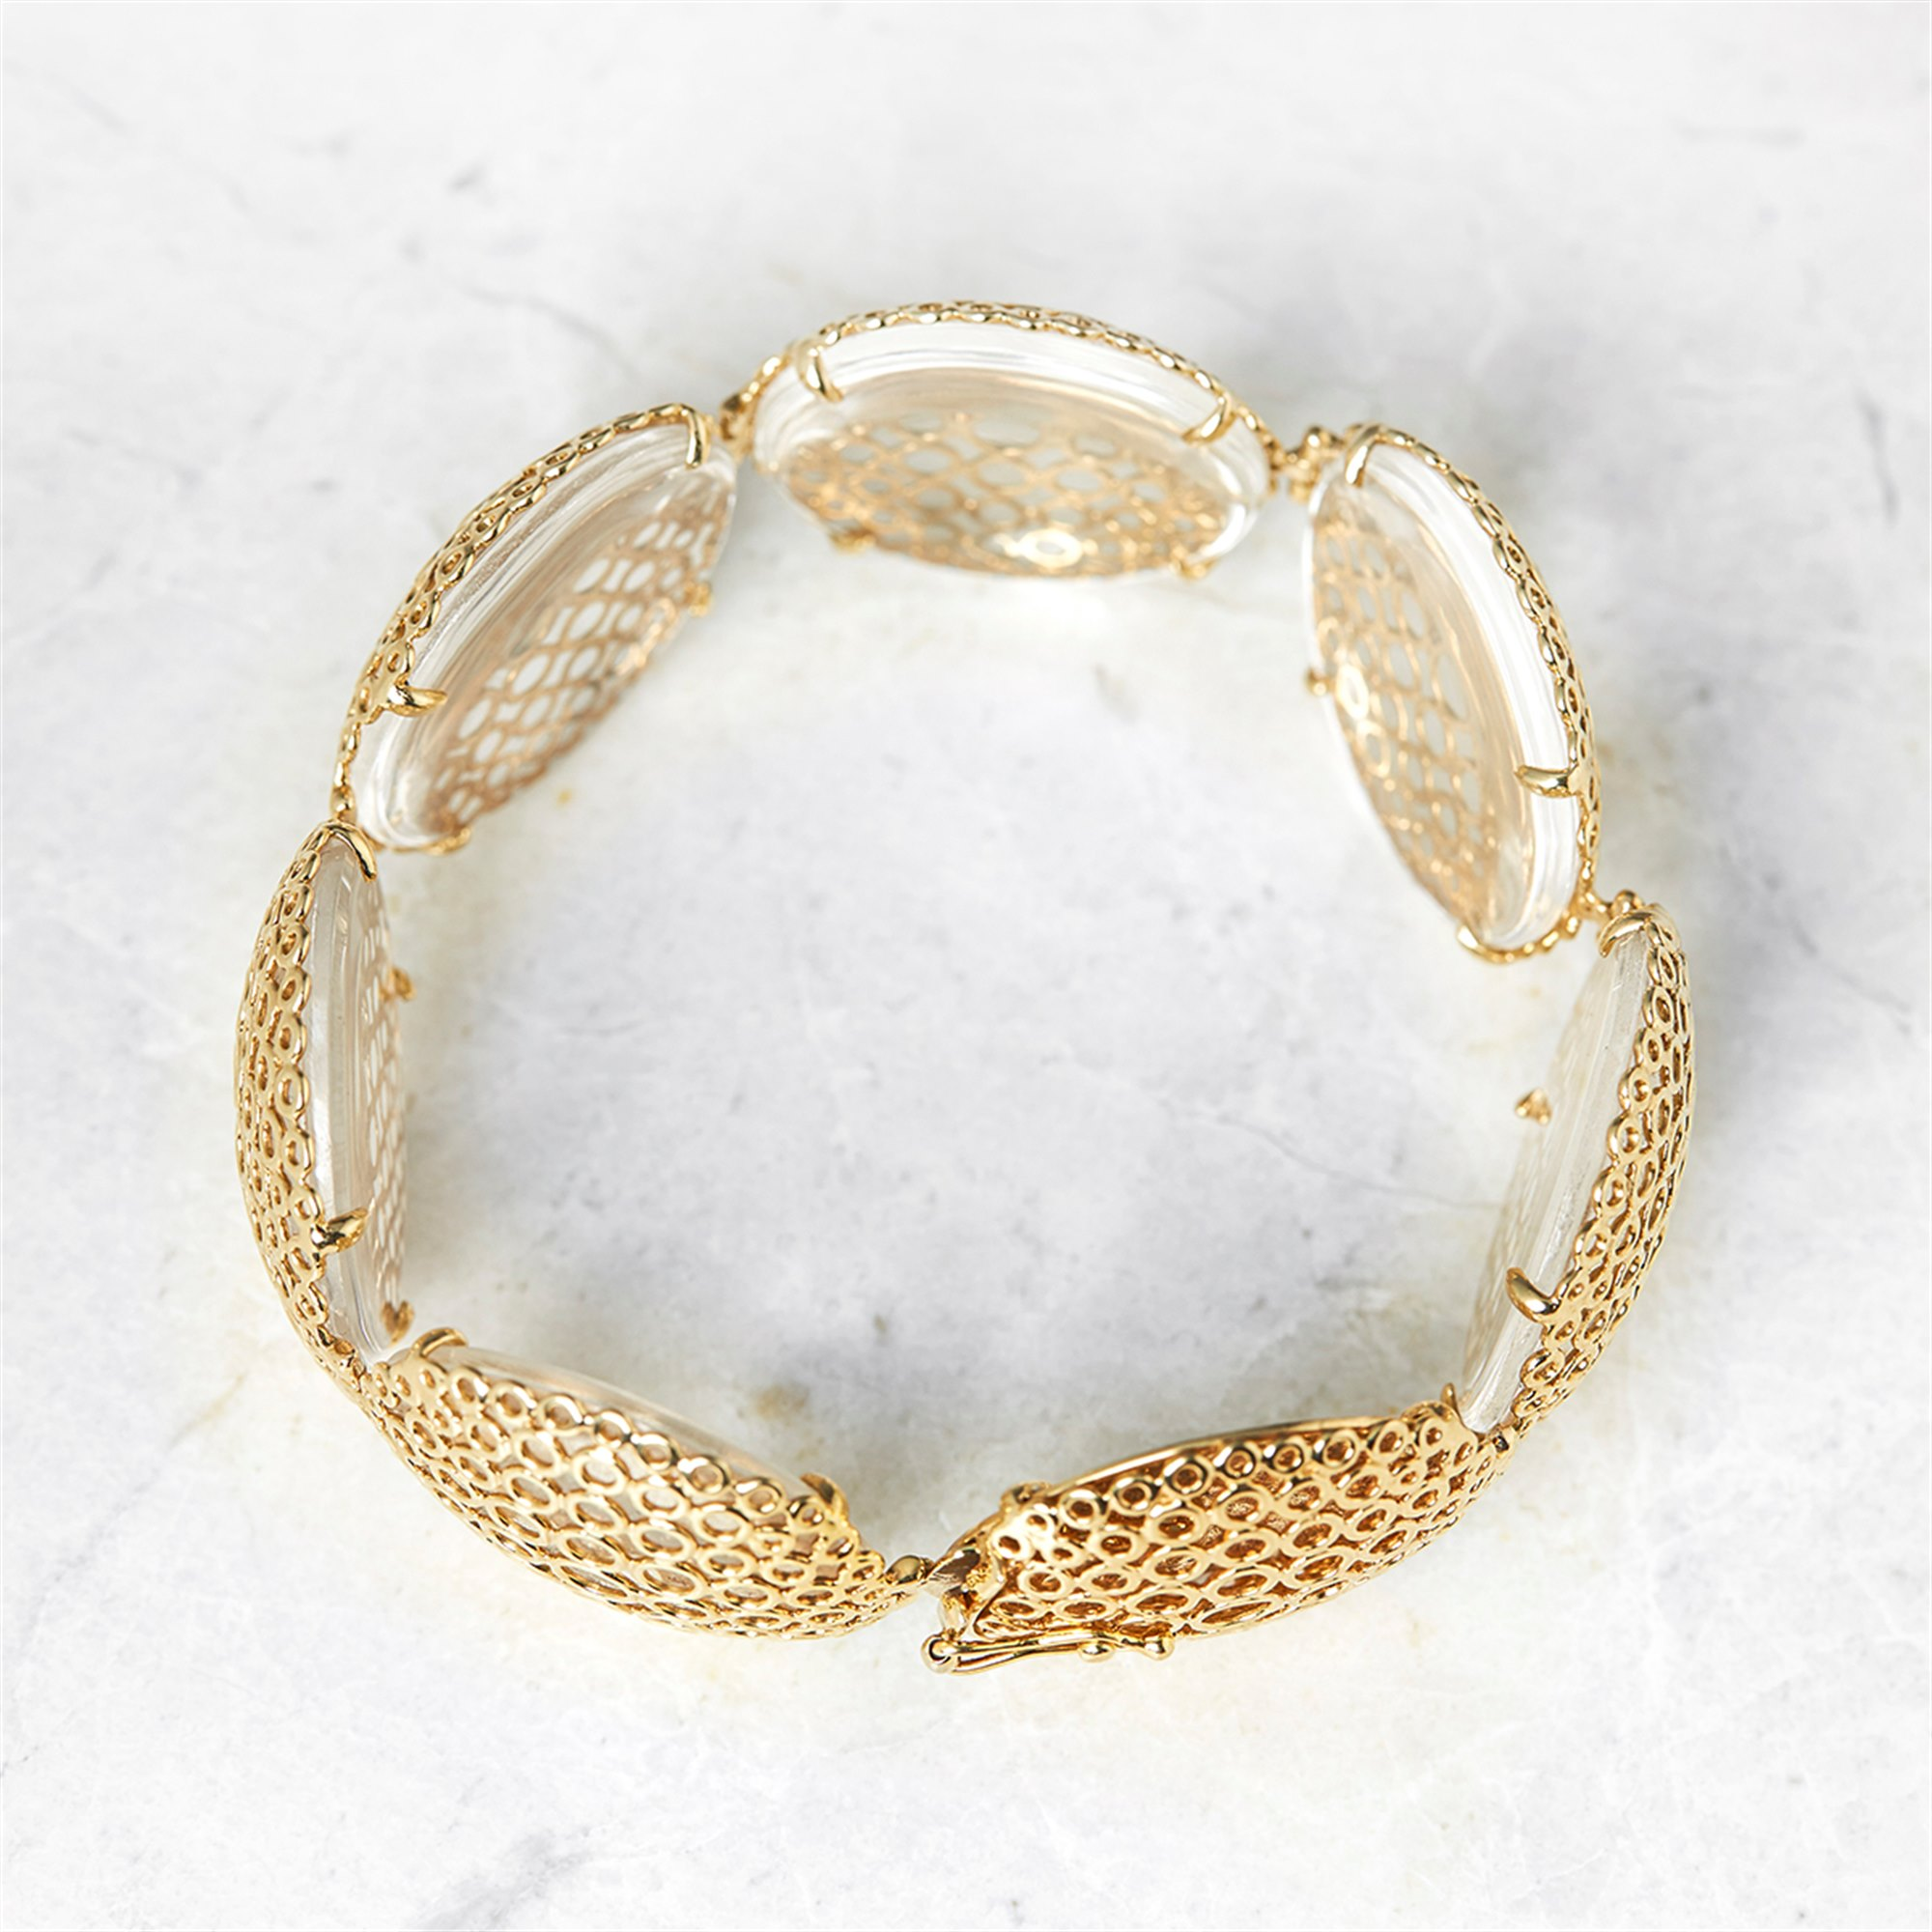 Carla Amorim 18k Yellow Gold Cabochon Clear Crystal Quartz Bracelet